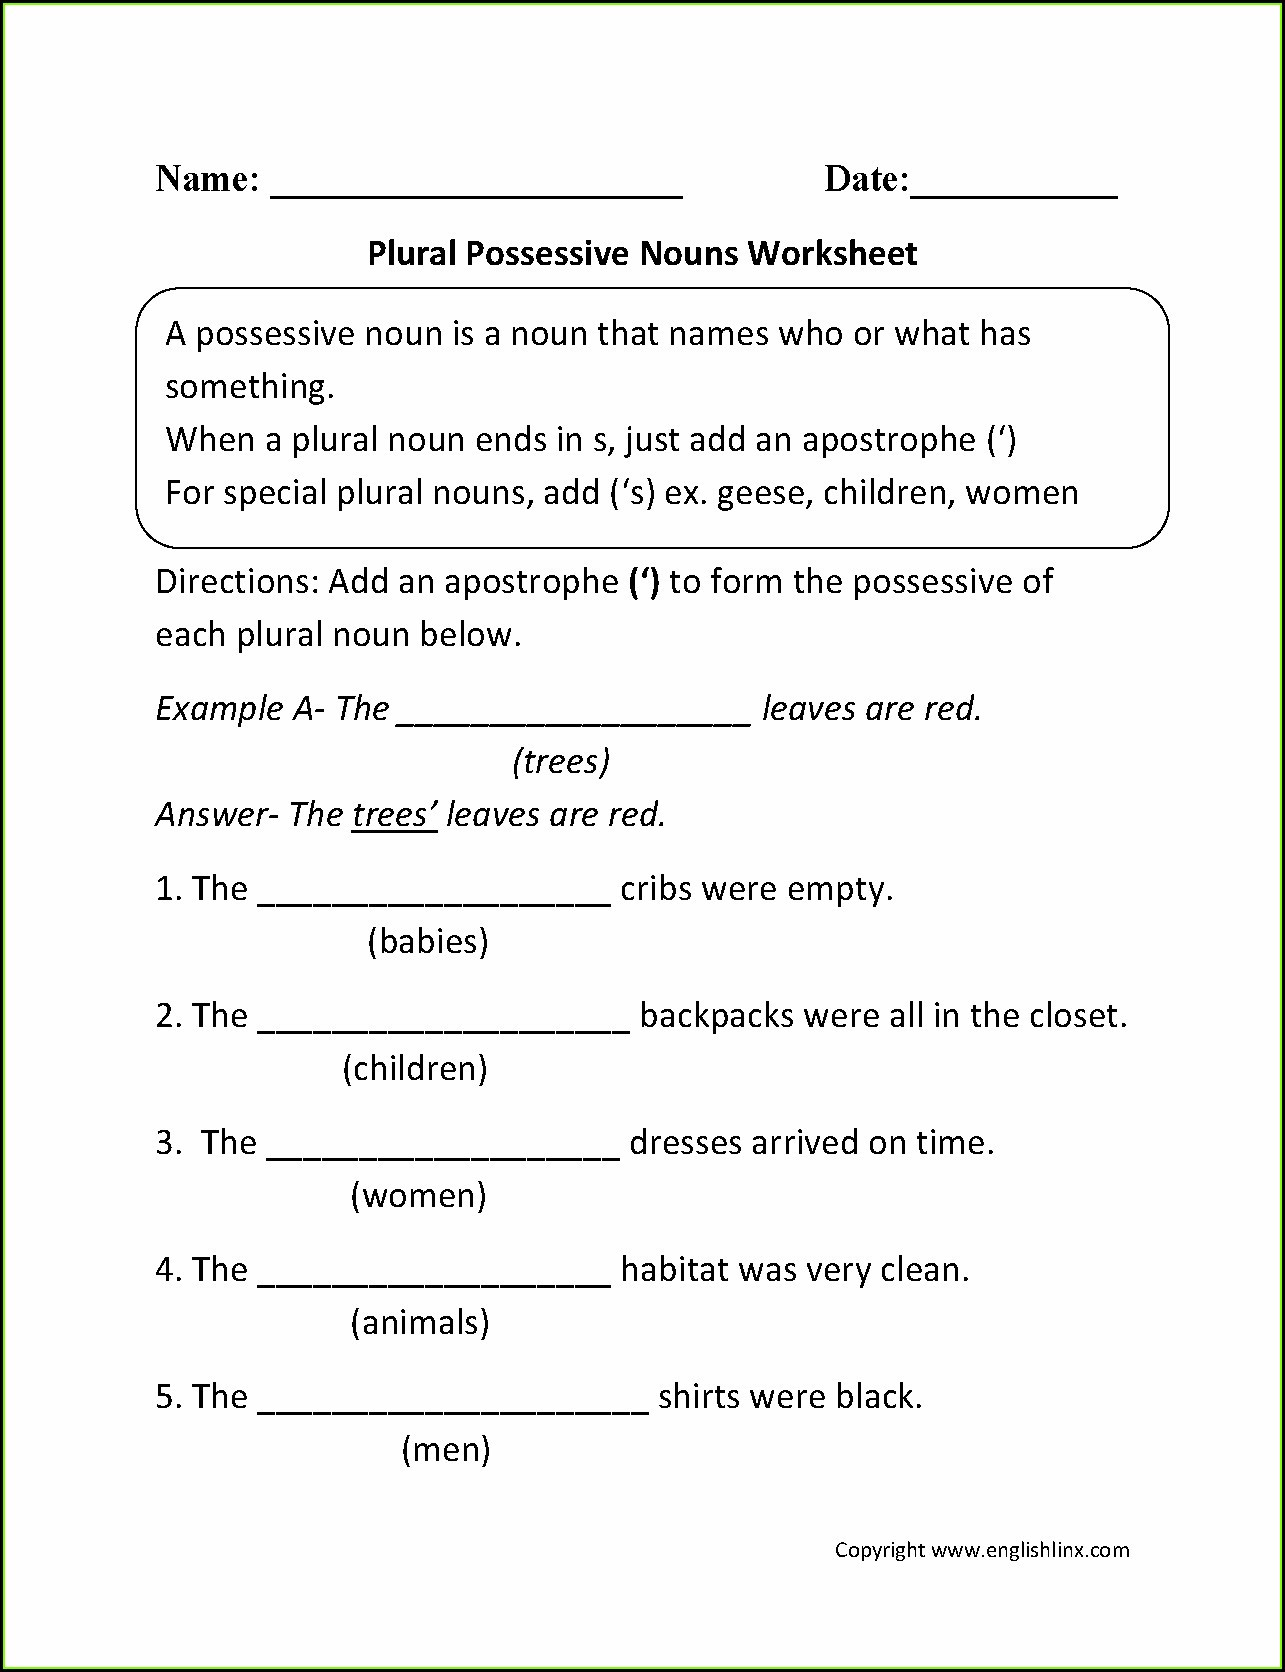 Possessive Pronouns Worksheet 3rd Grade Possessive Pronouns Worksheet 5th Grade